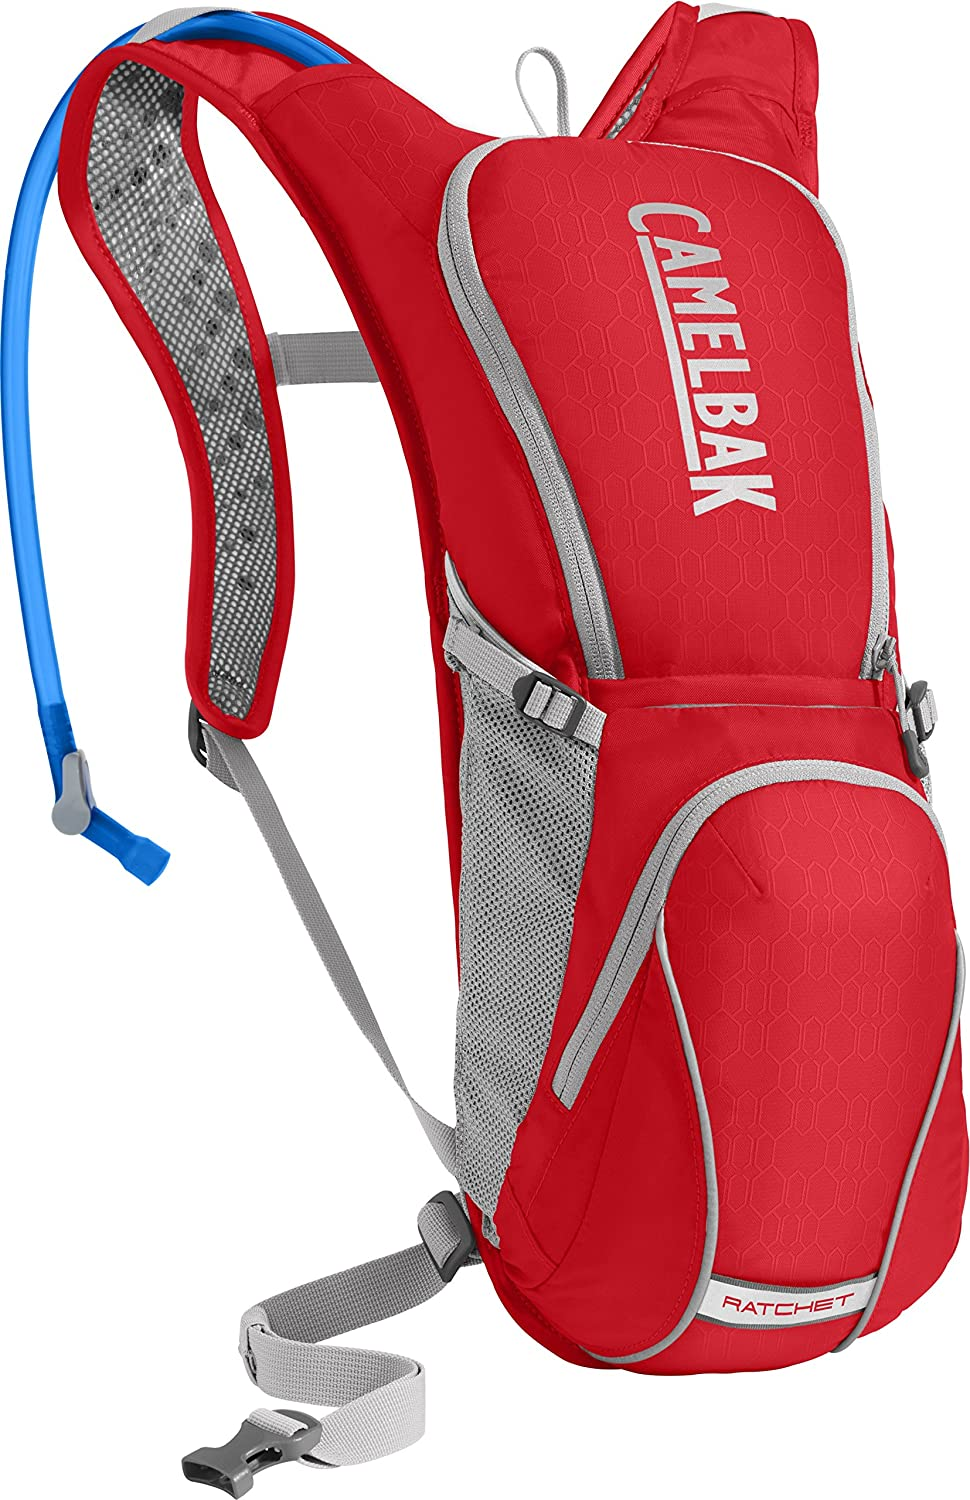 Camelbak 1297601900 Hydration Backpacks Ratchet Racing Red Silver